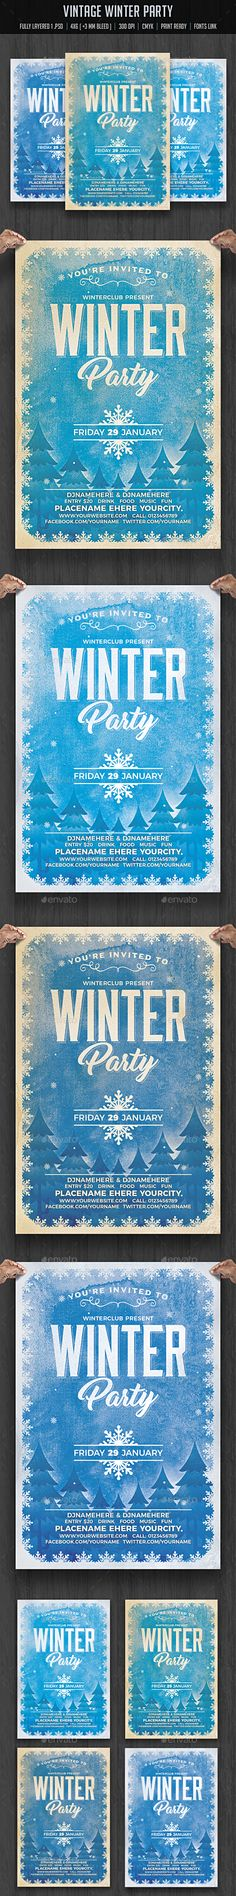 Back to School Party Flyer Template V3 School parties, Party - winter flyer template